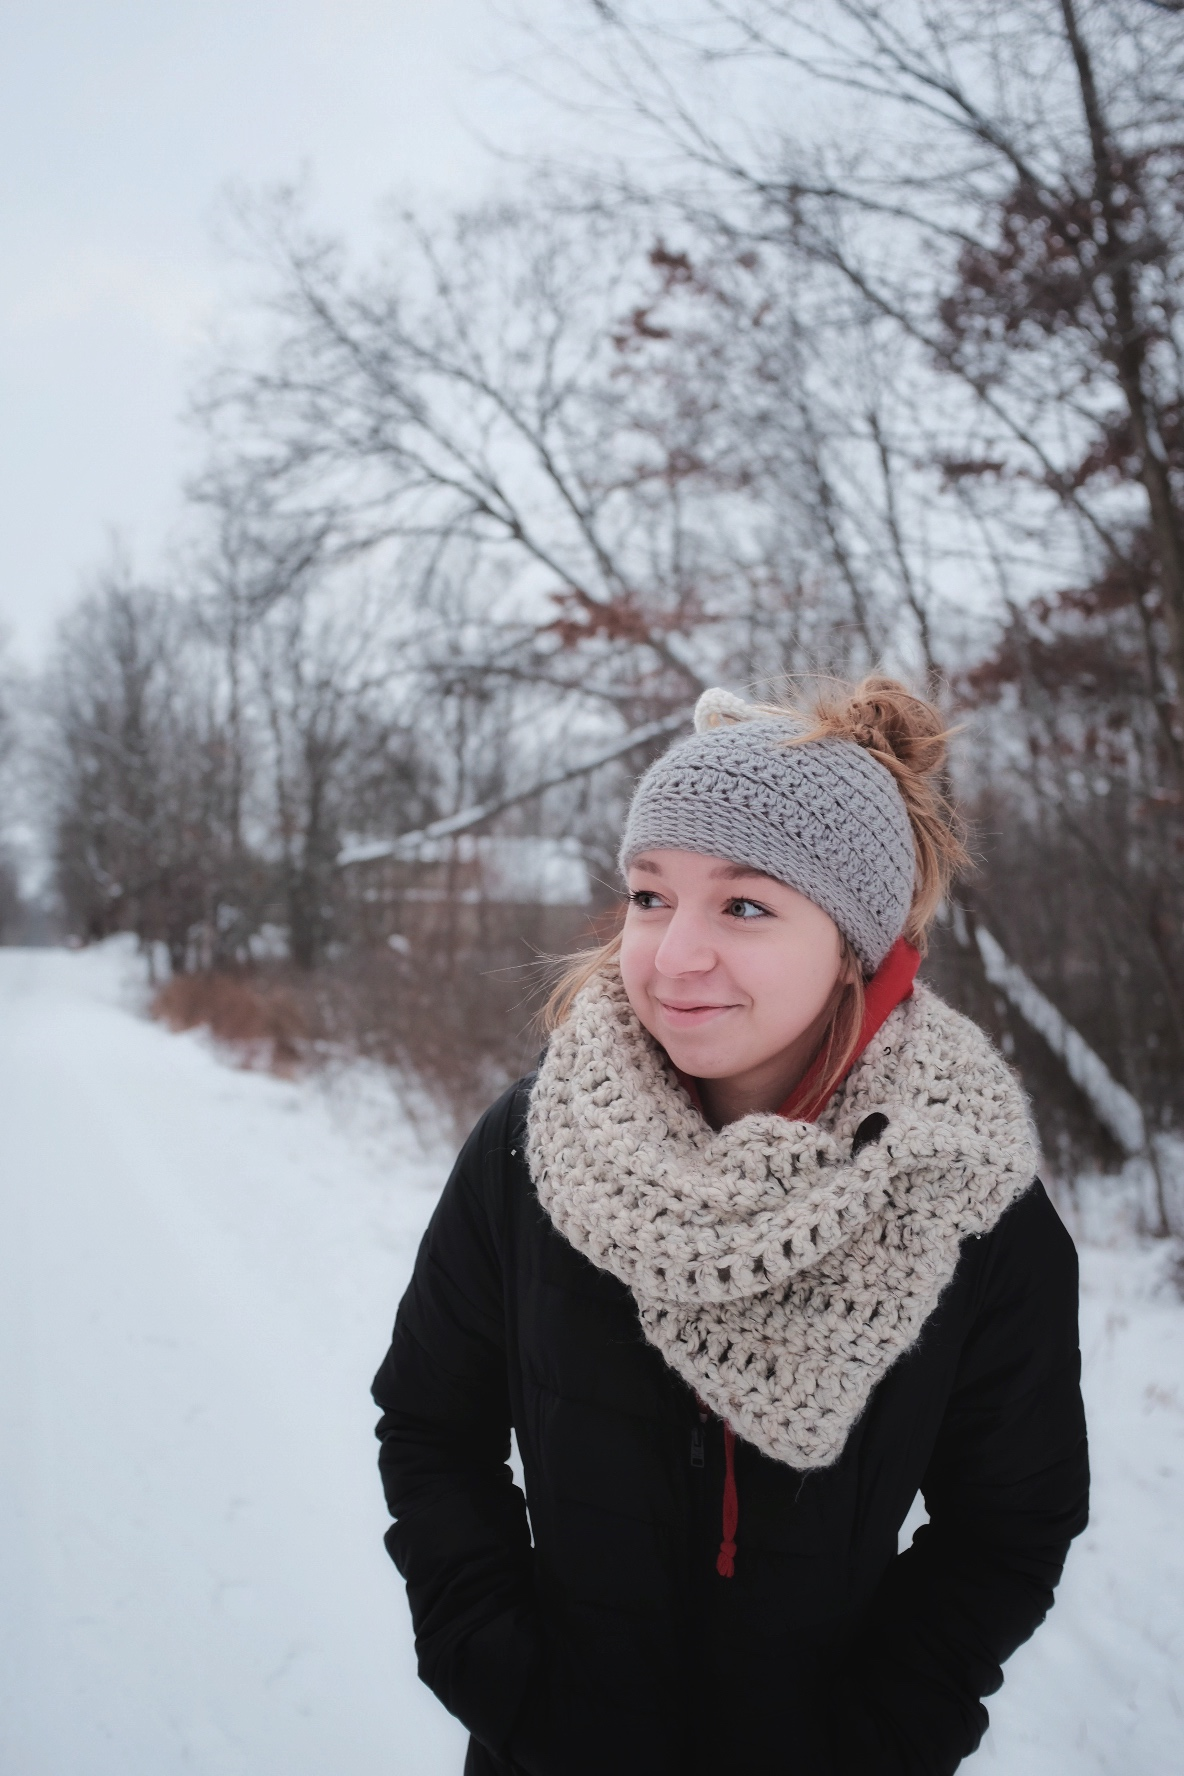 My lovely niece and friend, Kathryn, sporting a handmade, crocheted hat and scarf set.